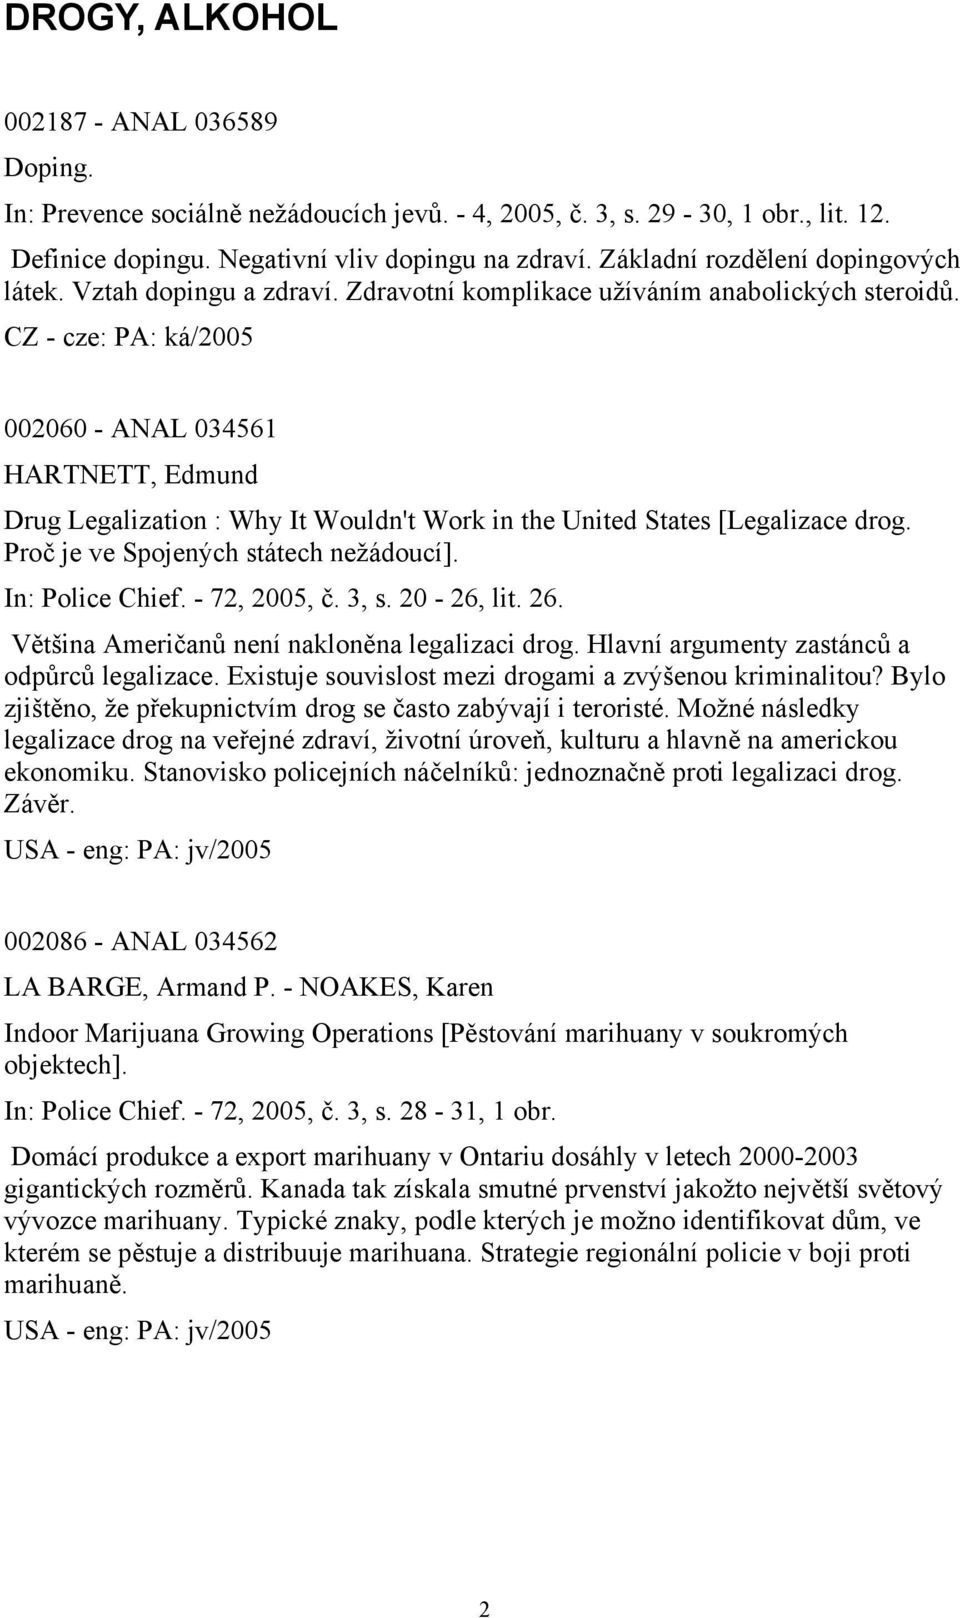 002060 - ANAL 034561 HARTNETT, Edmund Drug Legalization : Why It Wouldn't Work in the United States [Legalizace drog. Proč je ve Spojených státech nežádoucí]. In: Police Chief. - 72, 2005, č. 3, s.